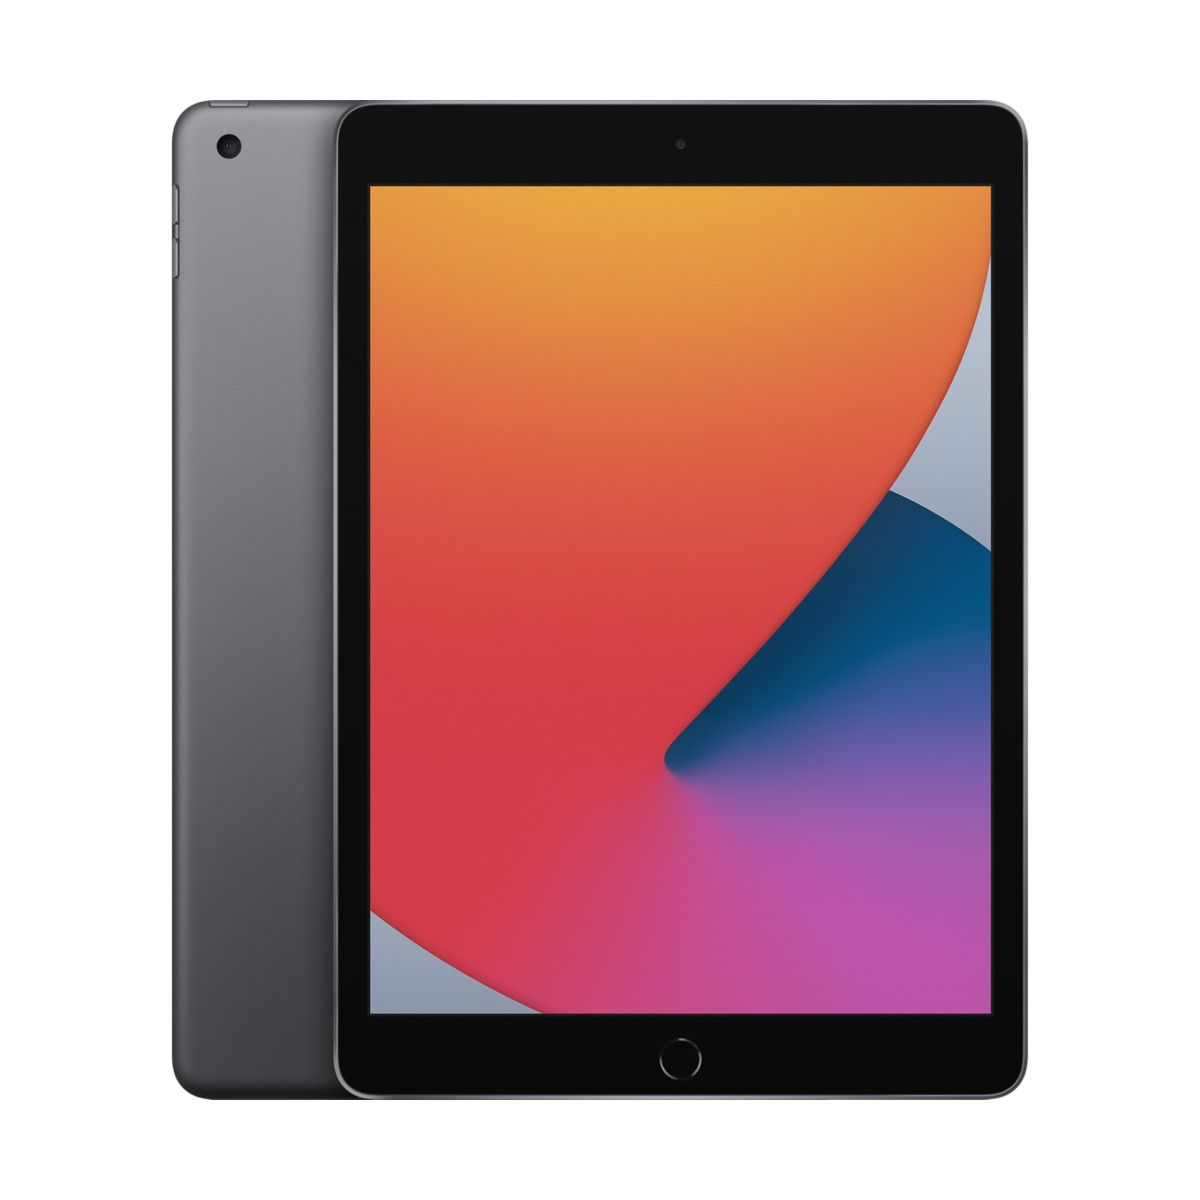 iPad Wi-Fi 32GB - Space Grey / SK